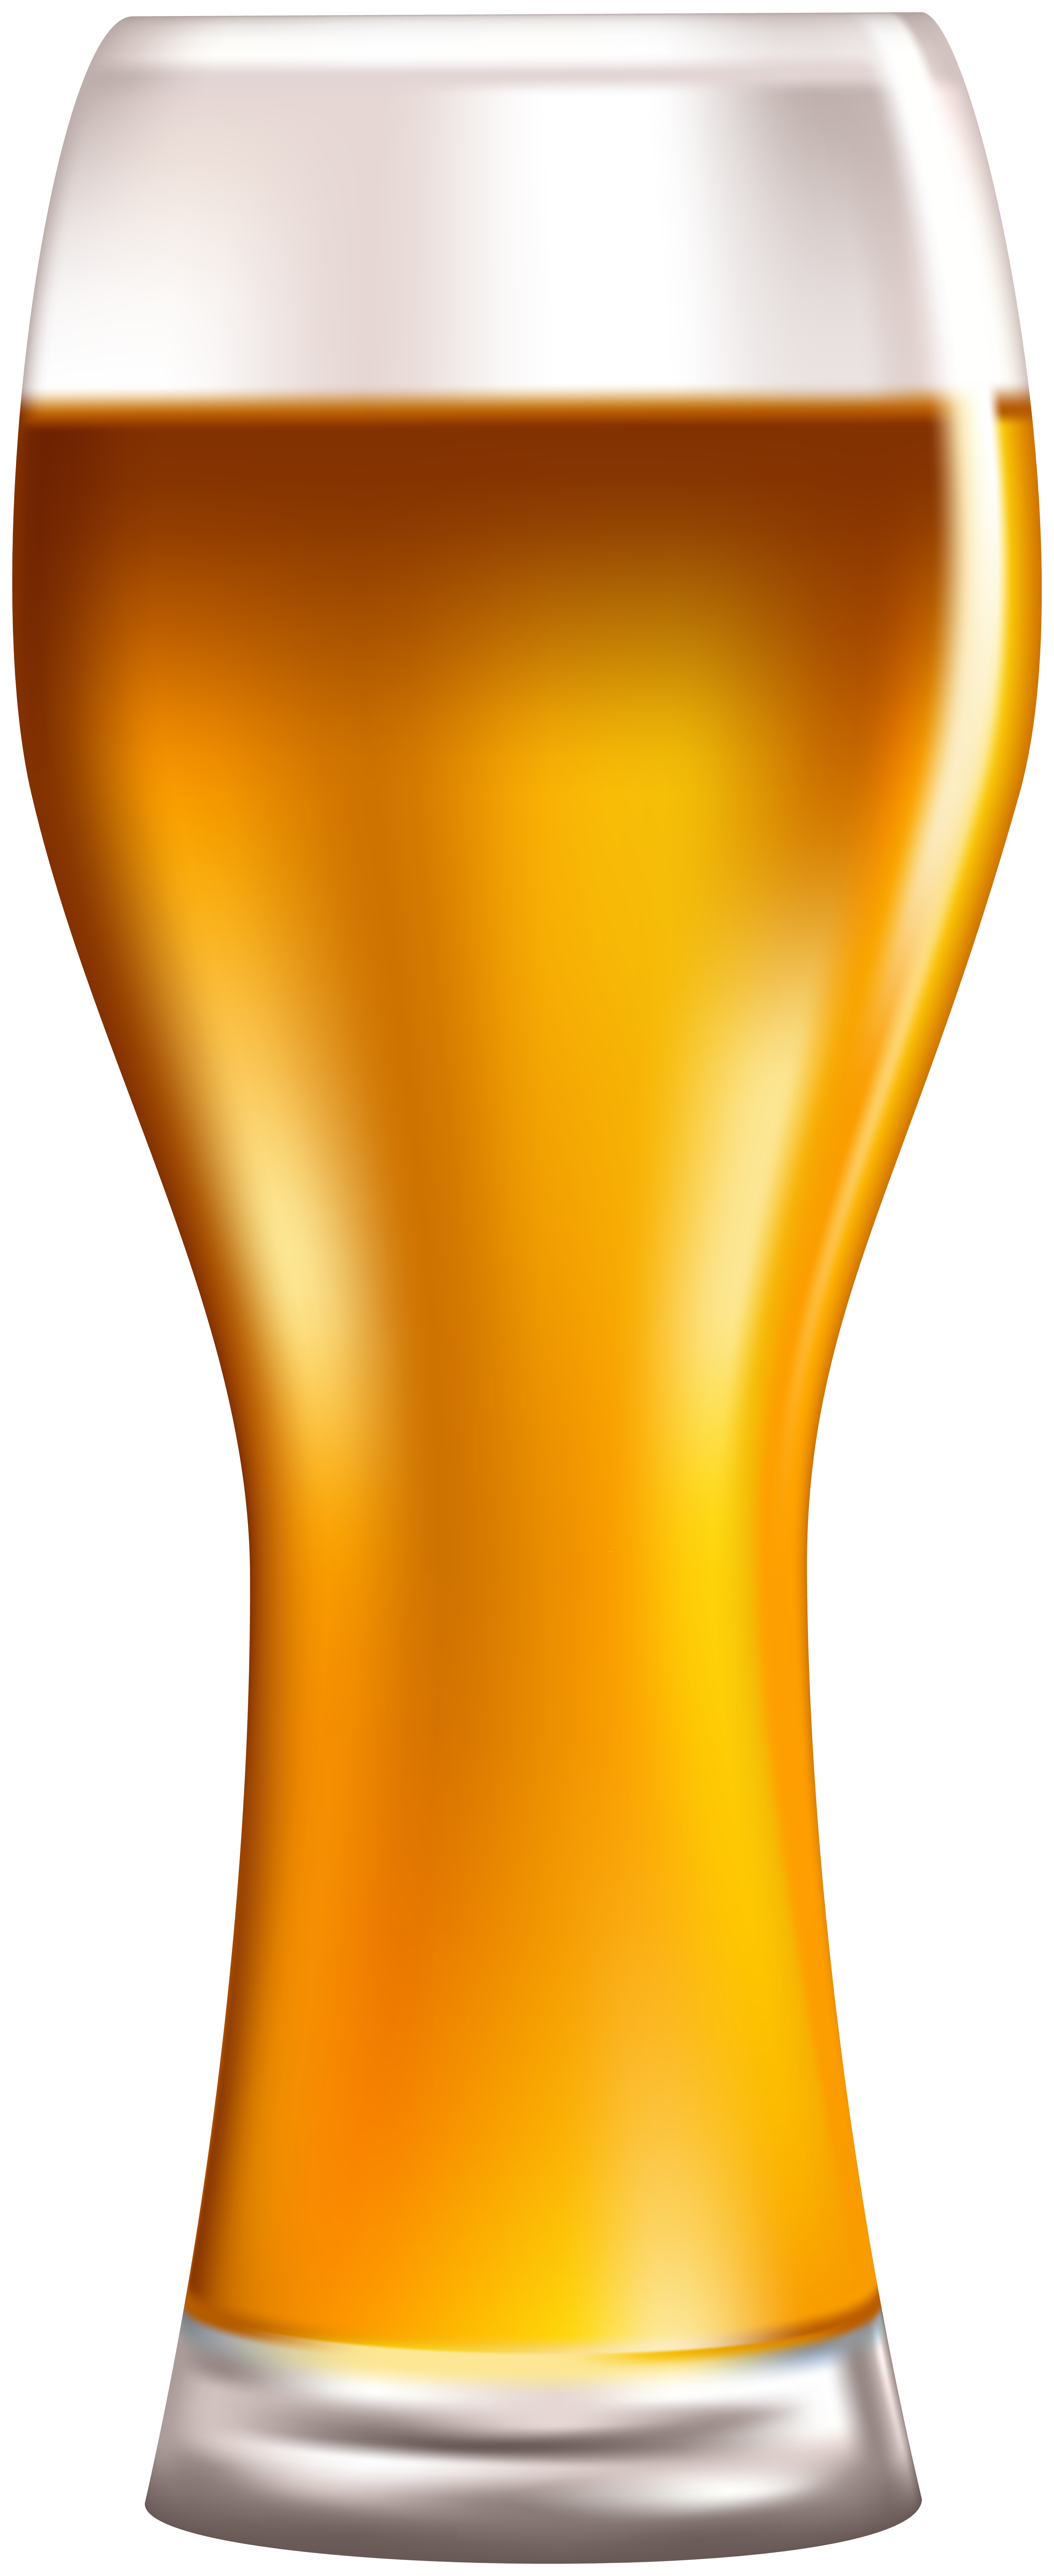 Glass Beer PNG Clip Art Image.